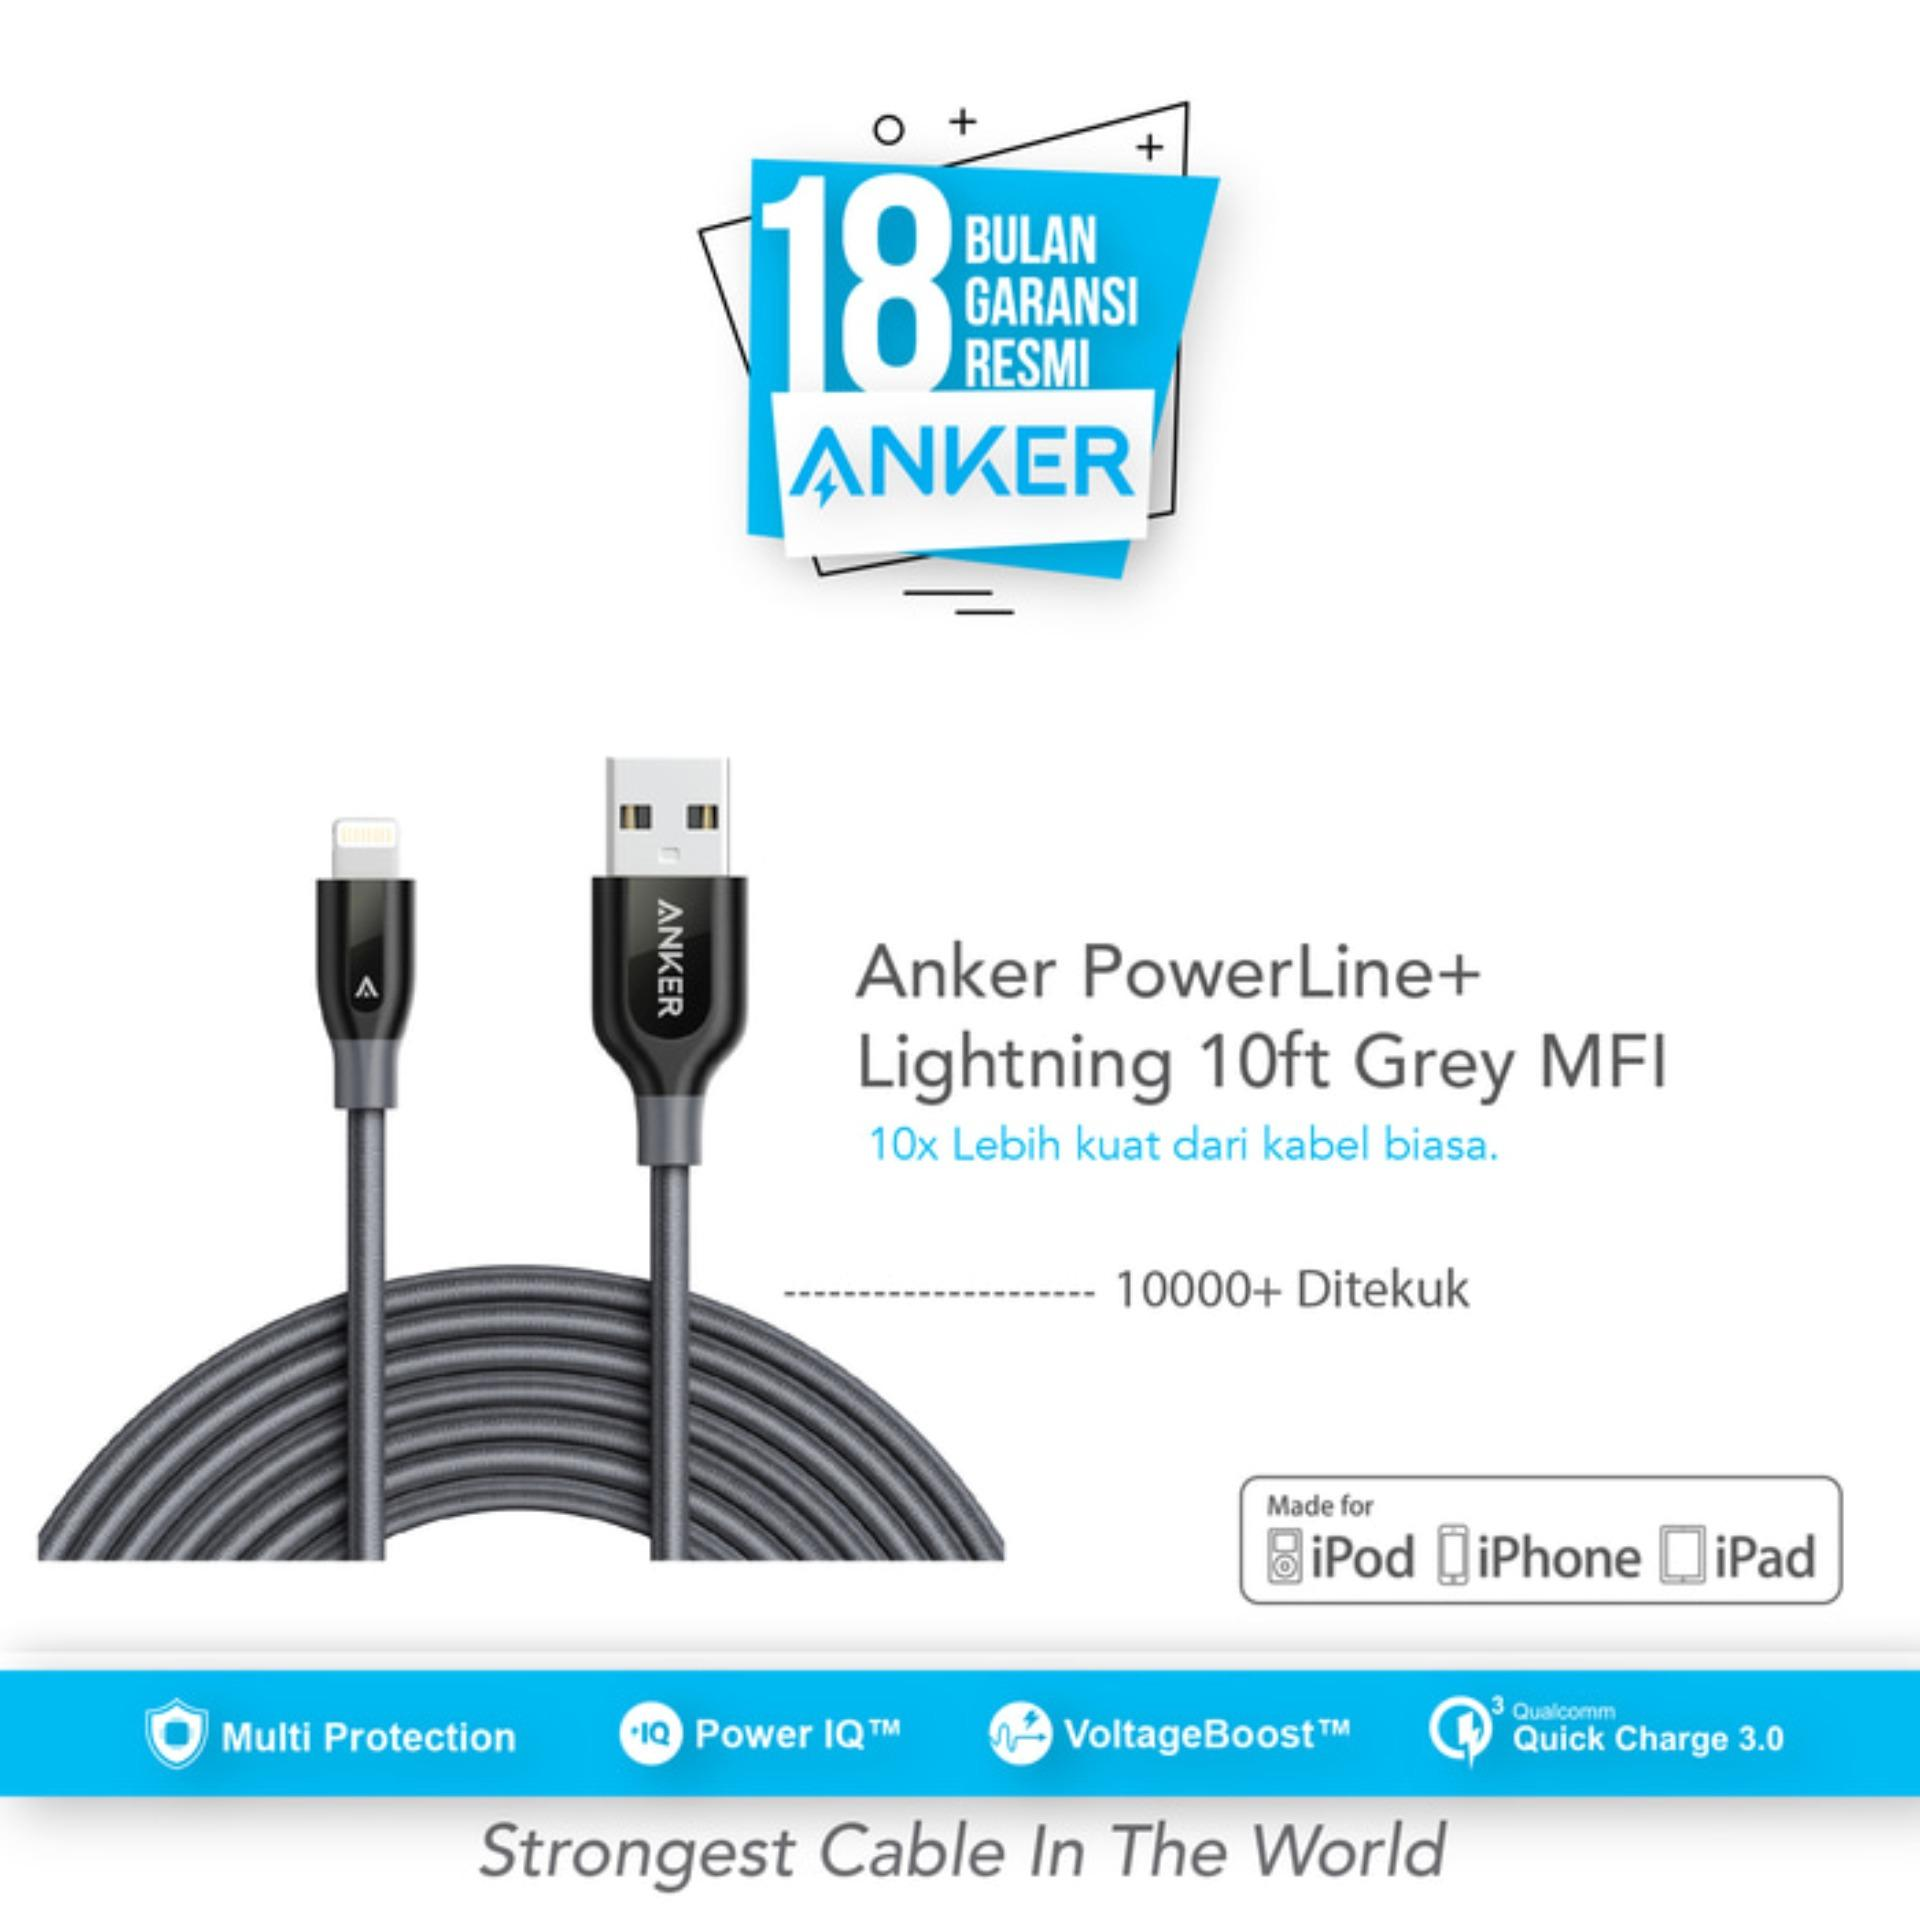 Harga Anker Powerline Lightning Mfi Certified 10Ft 3M Gray Lengkap